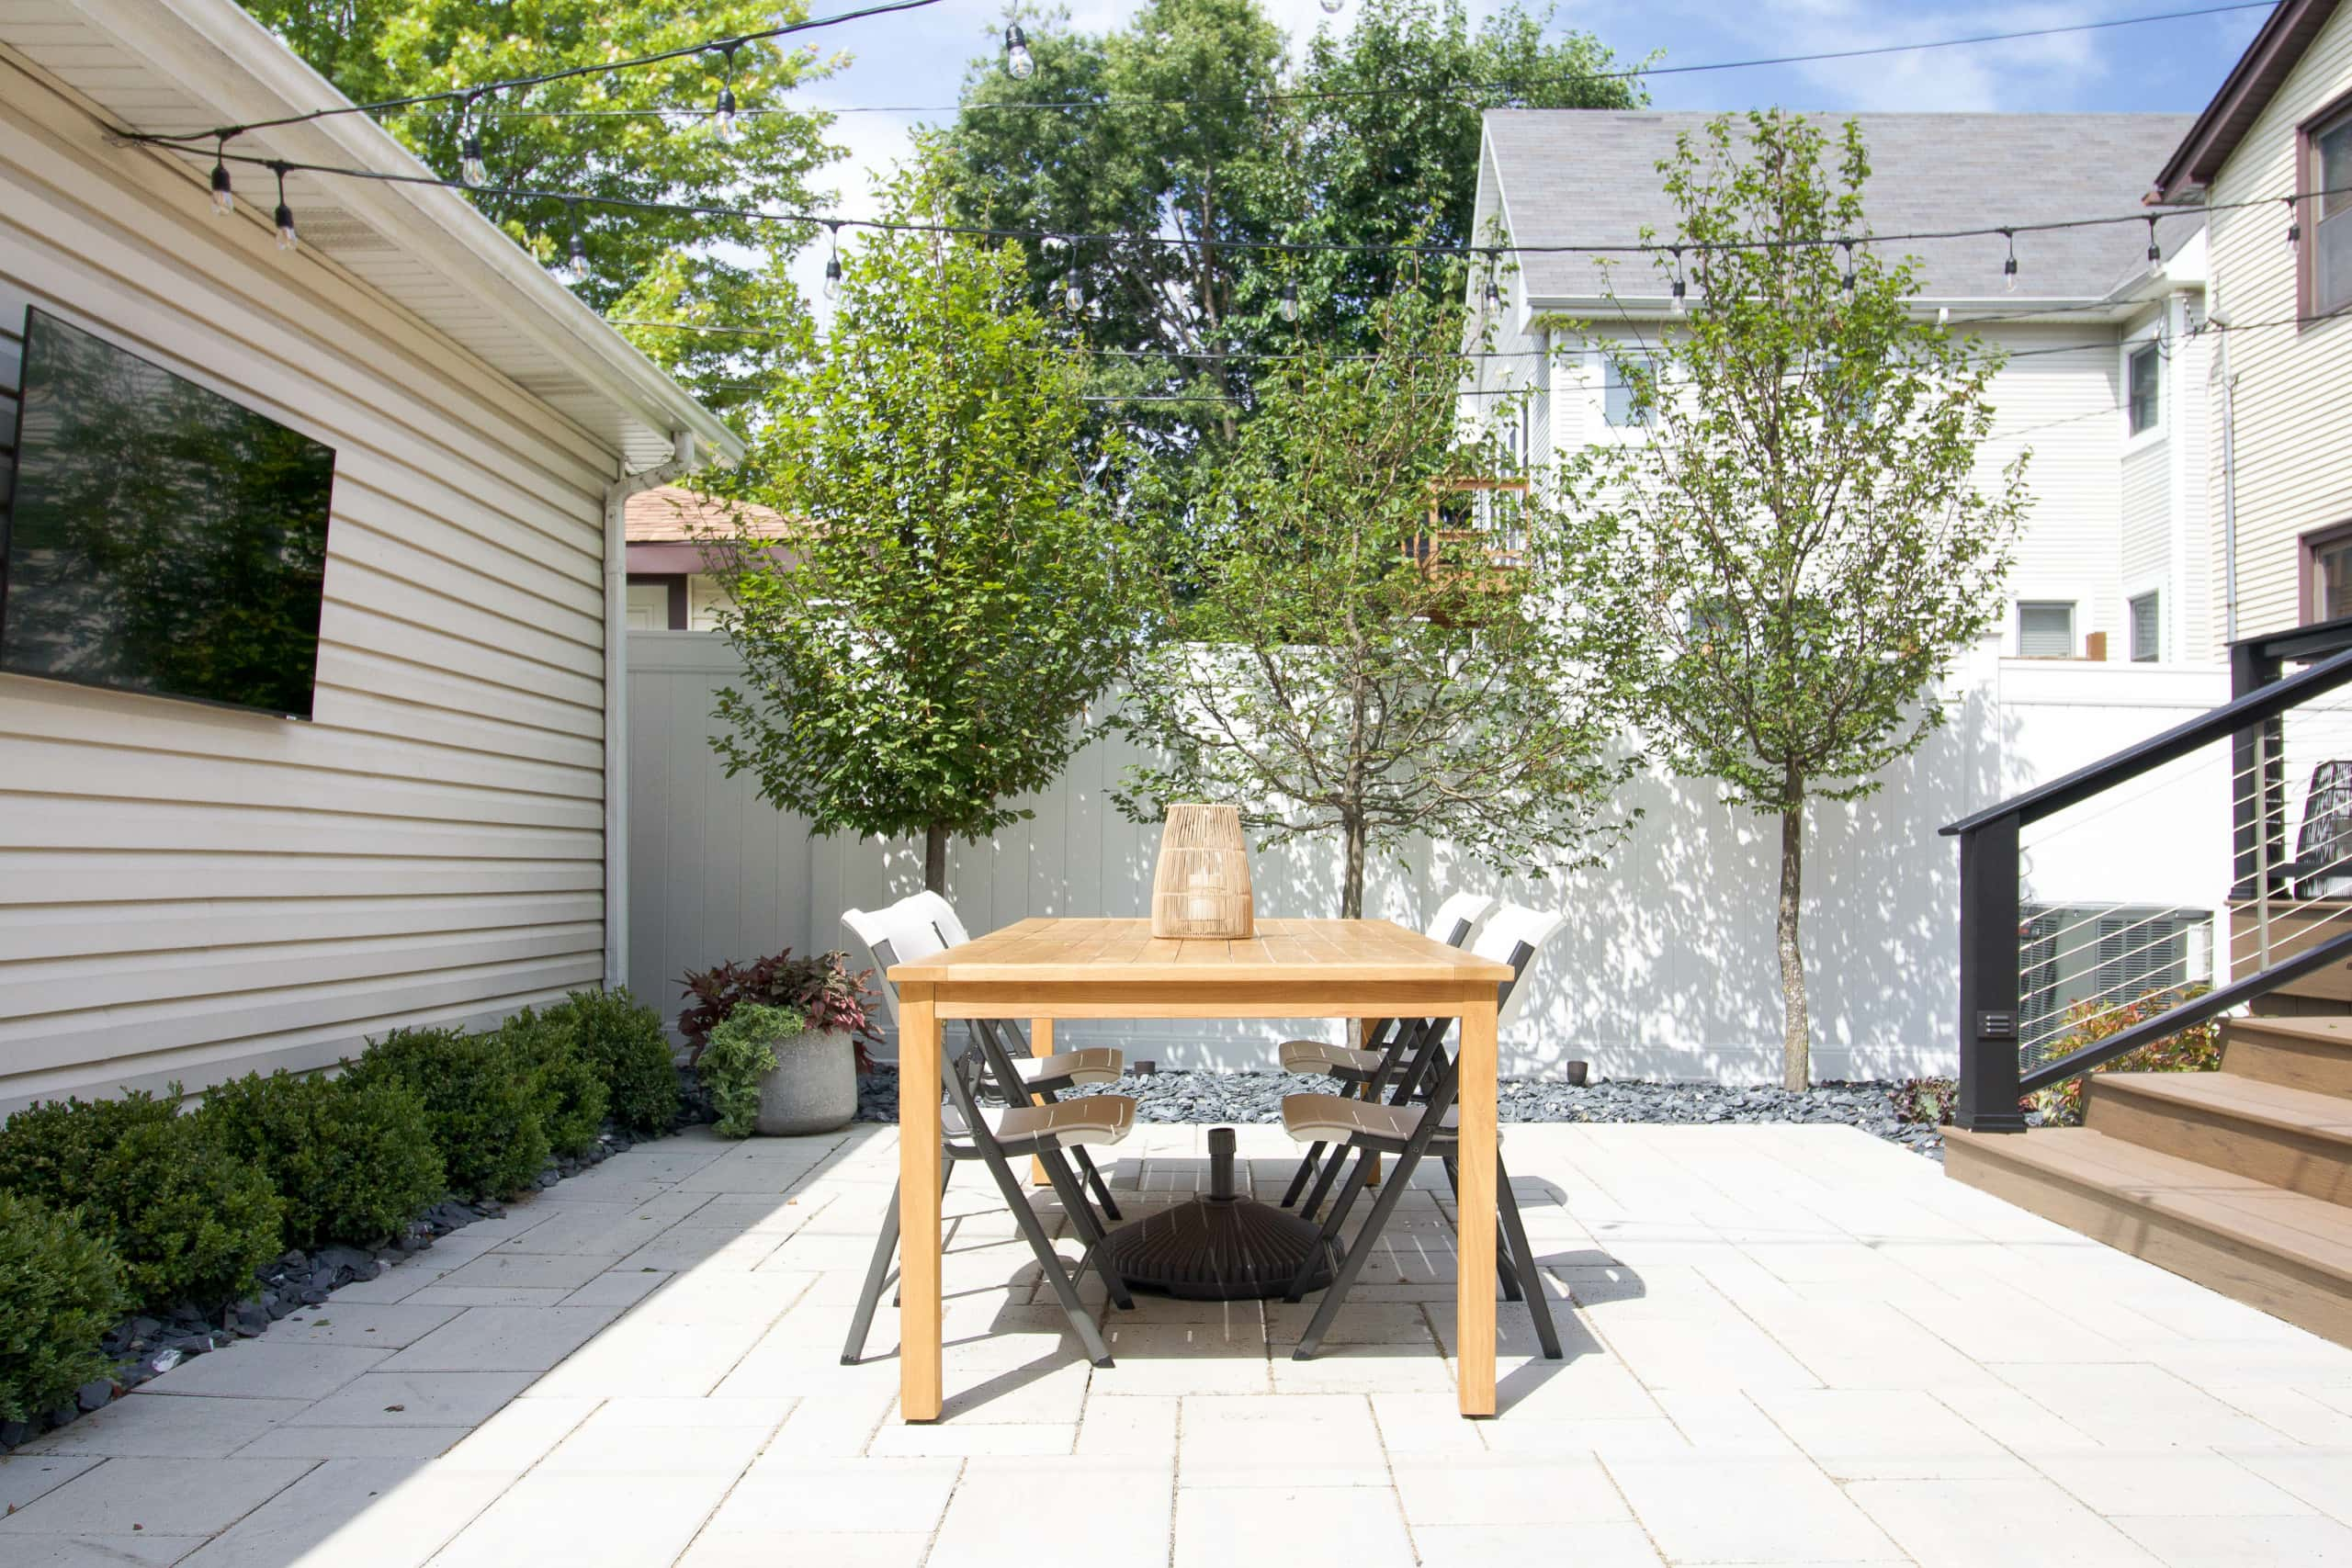 Adding three hornbeam trees to our backyard landscaping